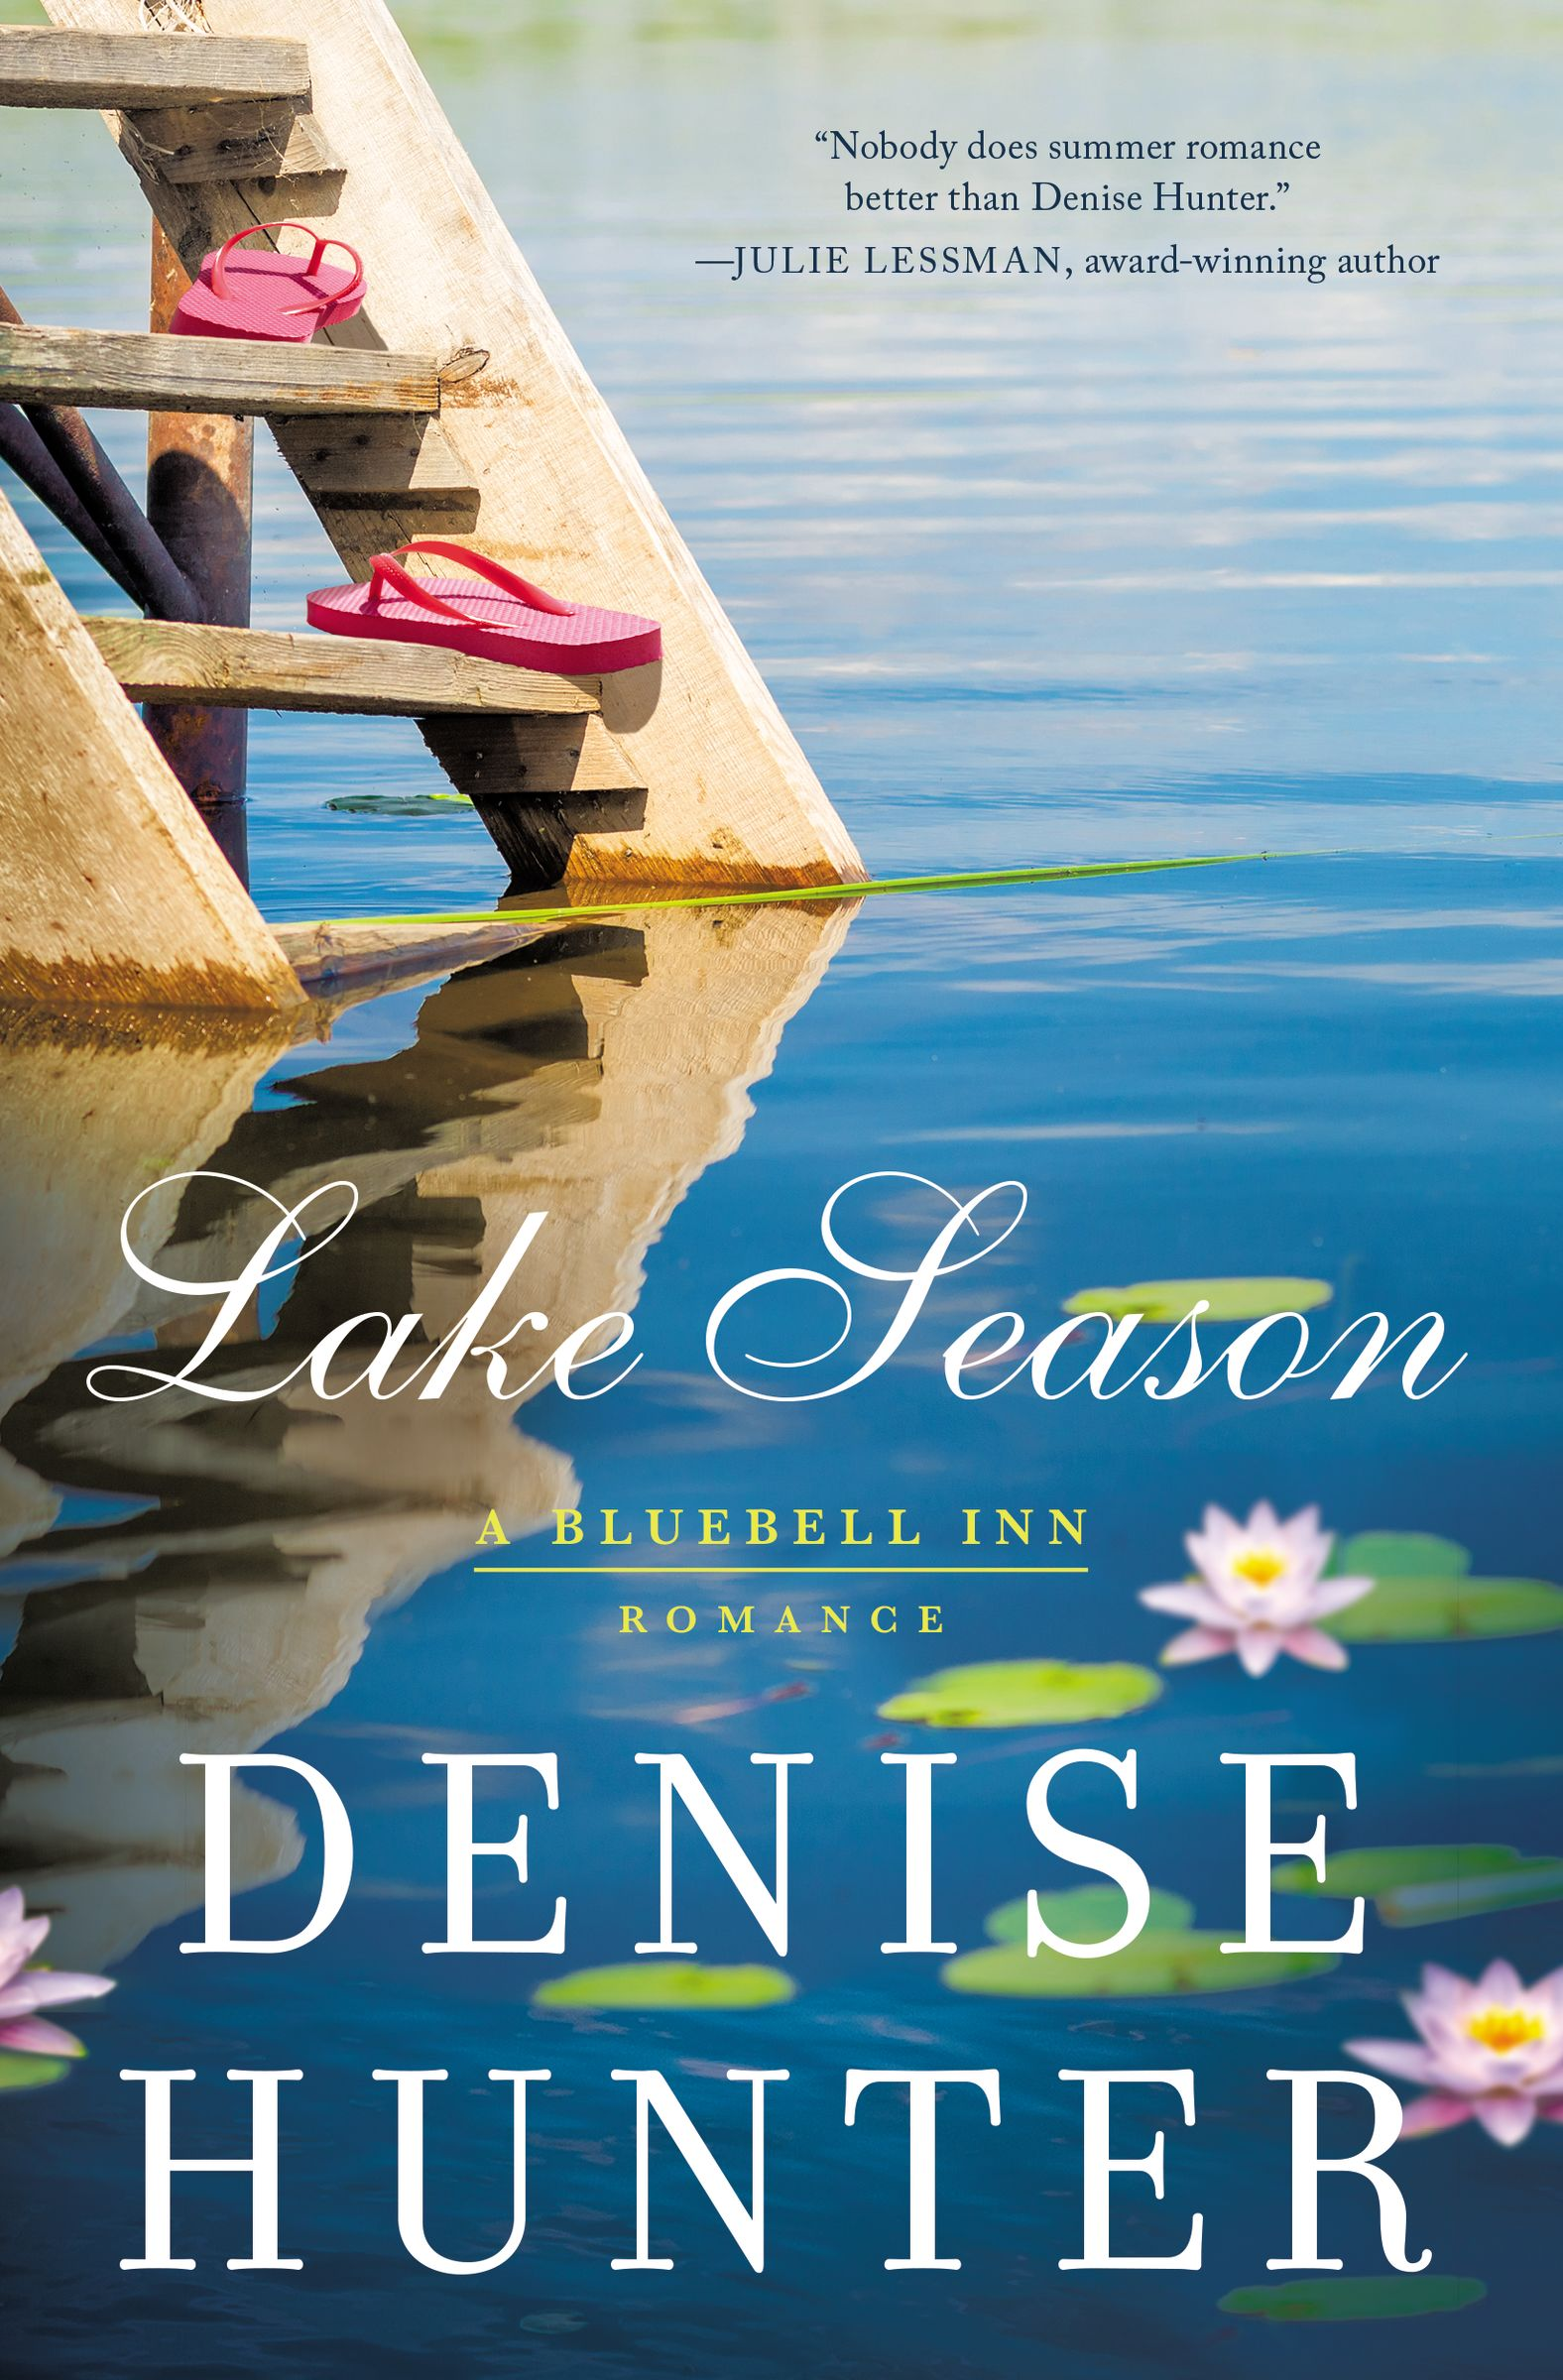 Lake Season (Bluebell Inn Romance #1)